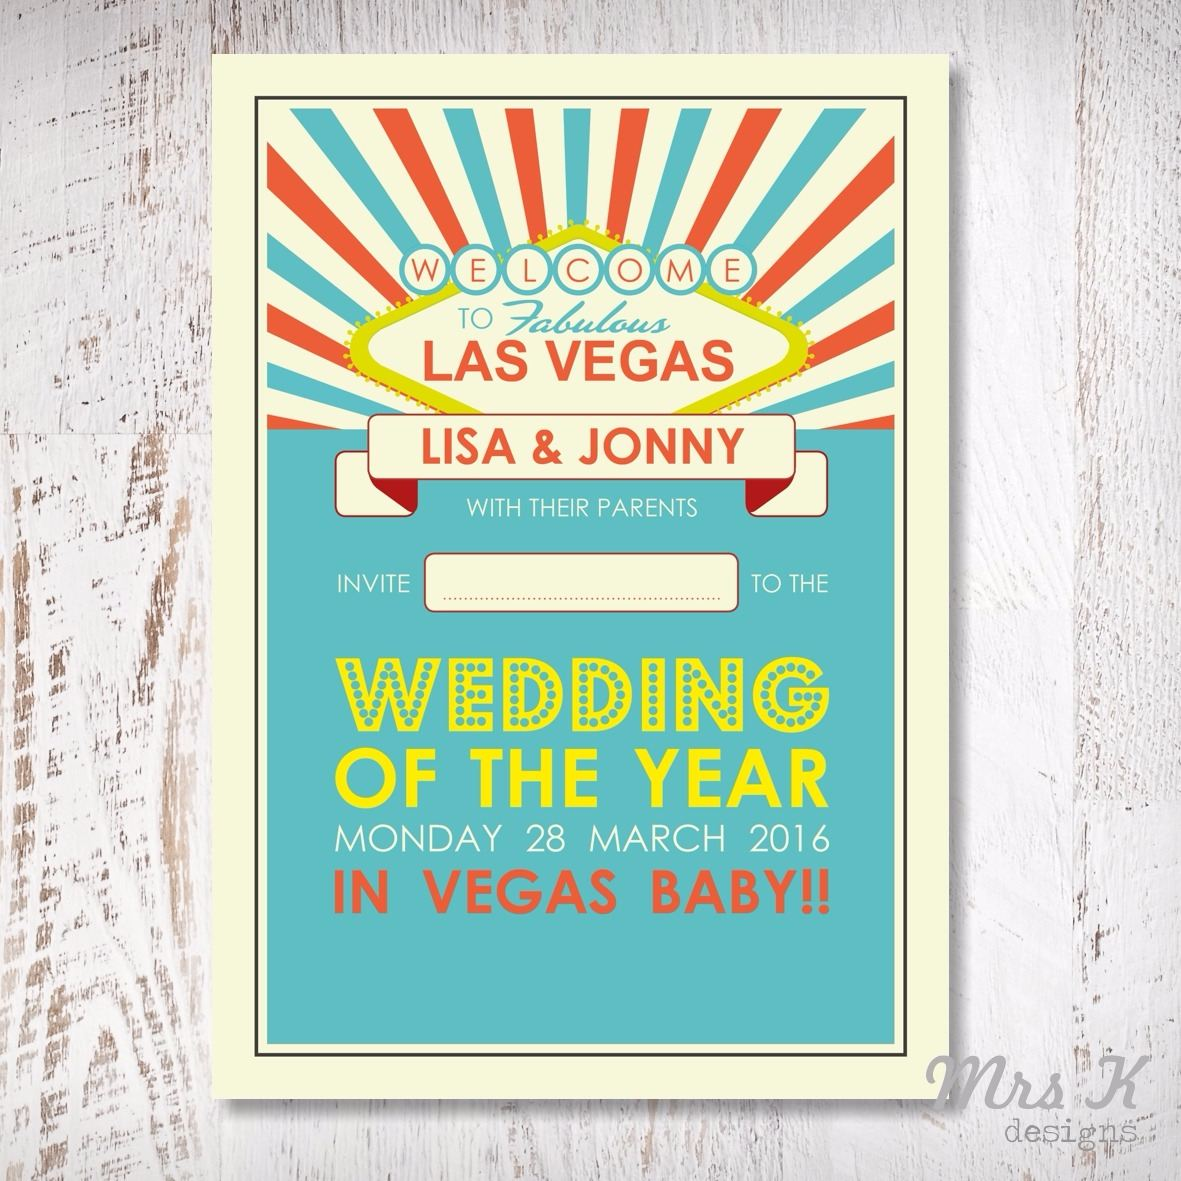 vegas wedding set - invitation page